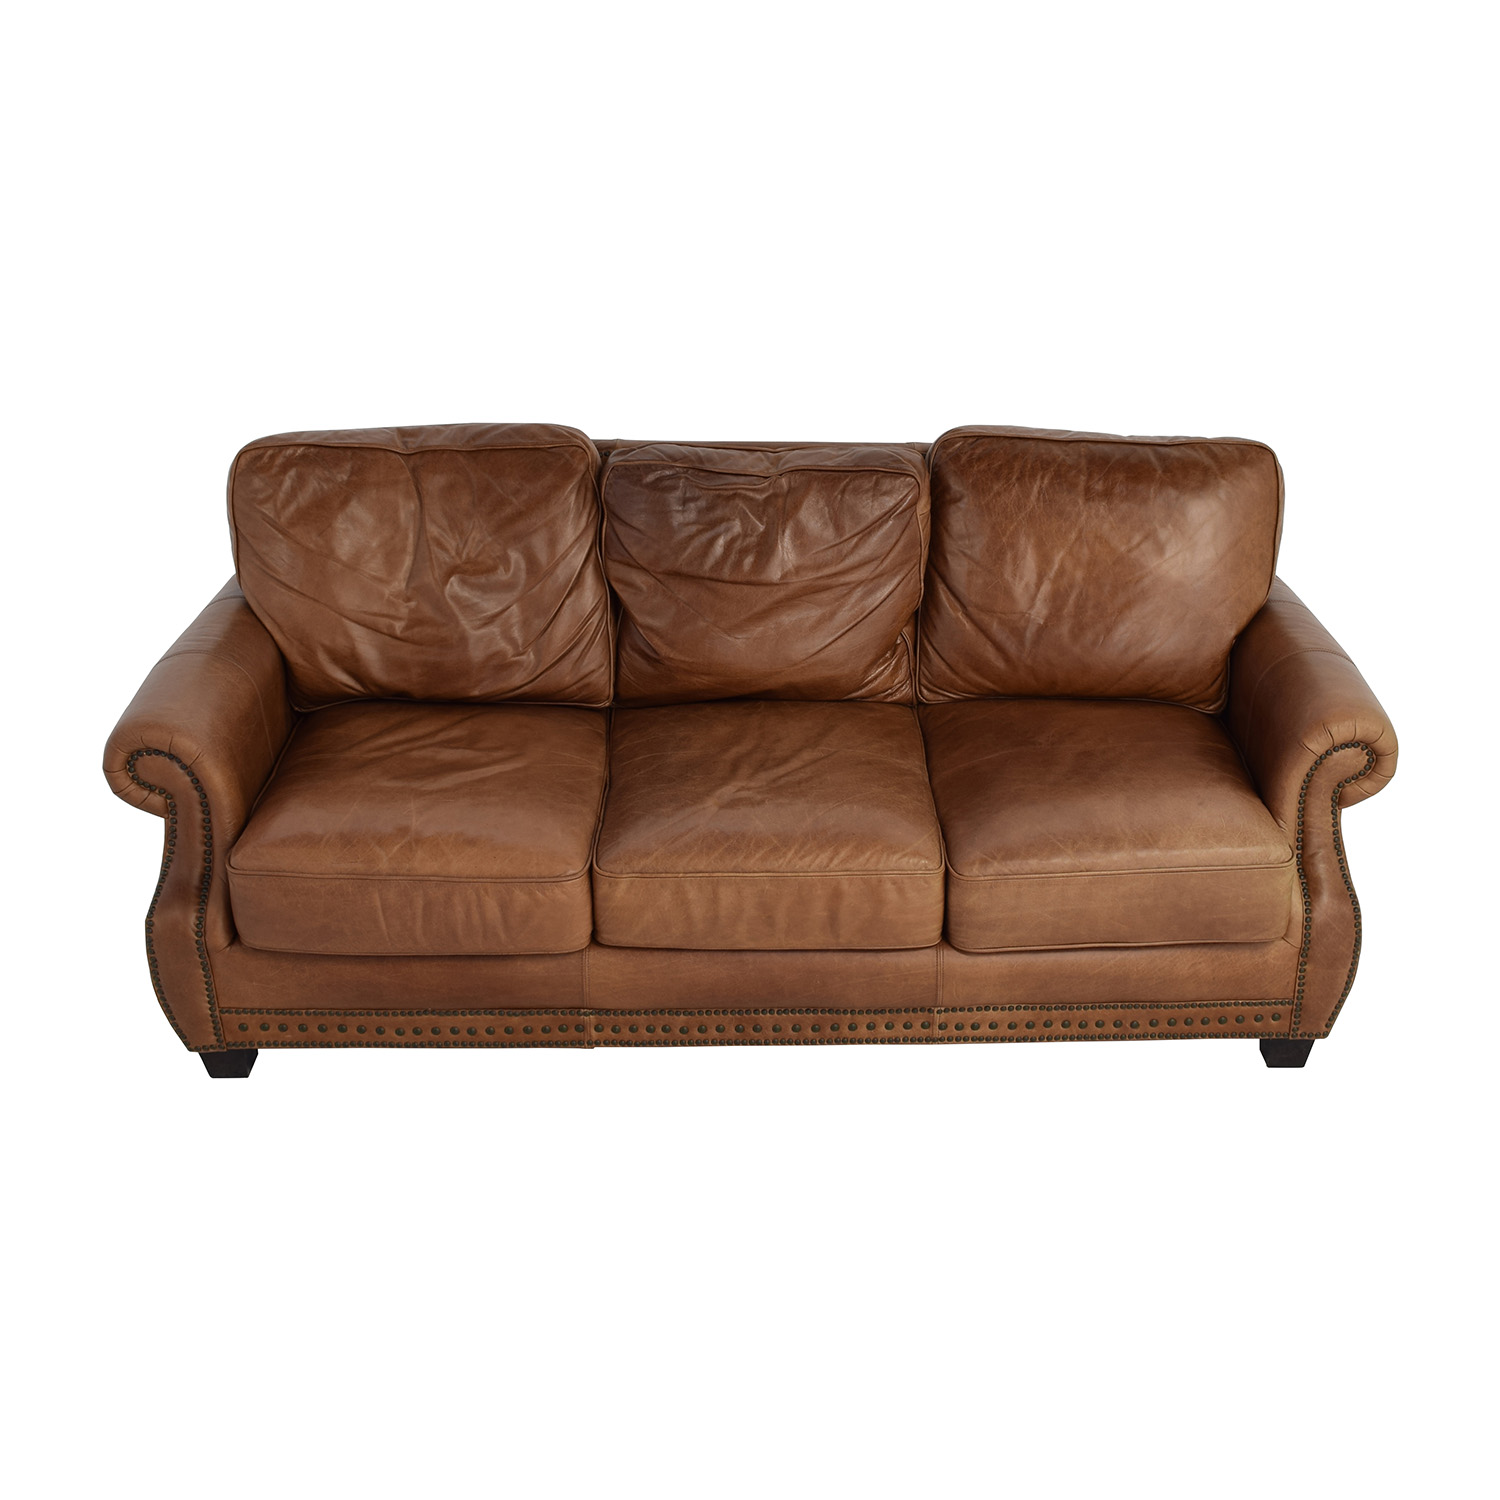 71 Off Jennifer Convertibles Jennifer Convertibles Sofa